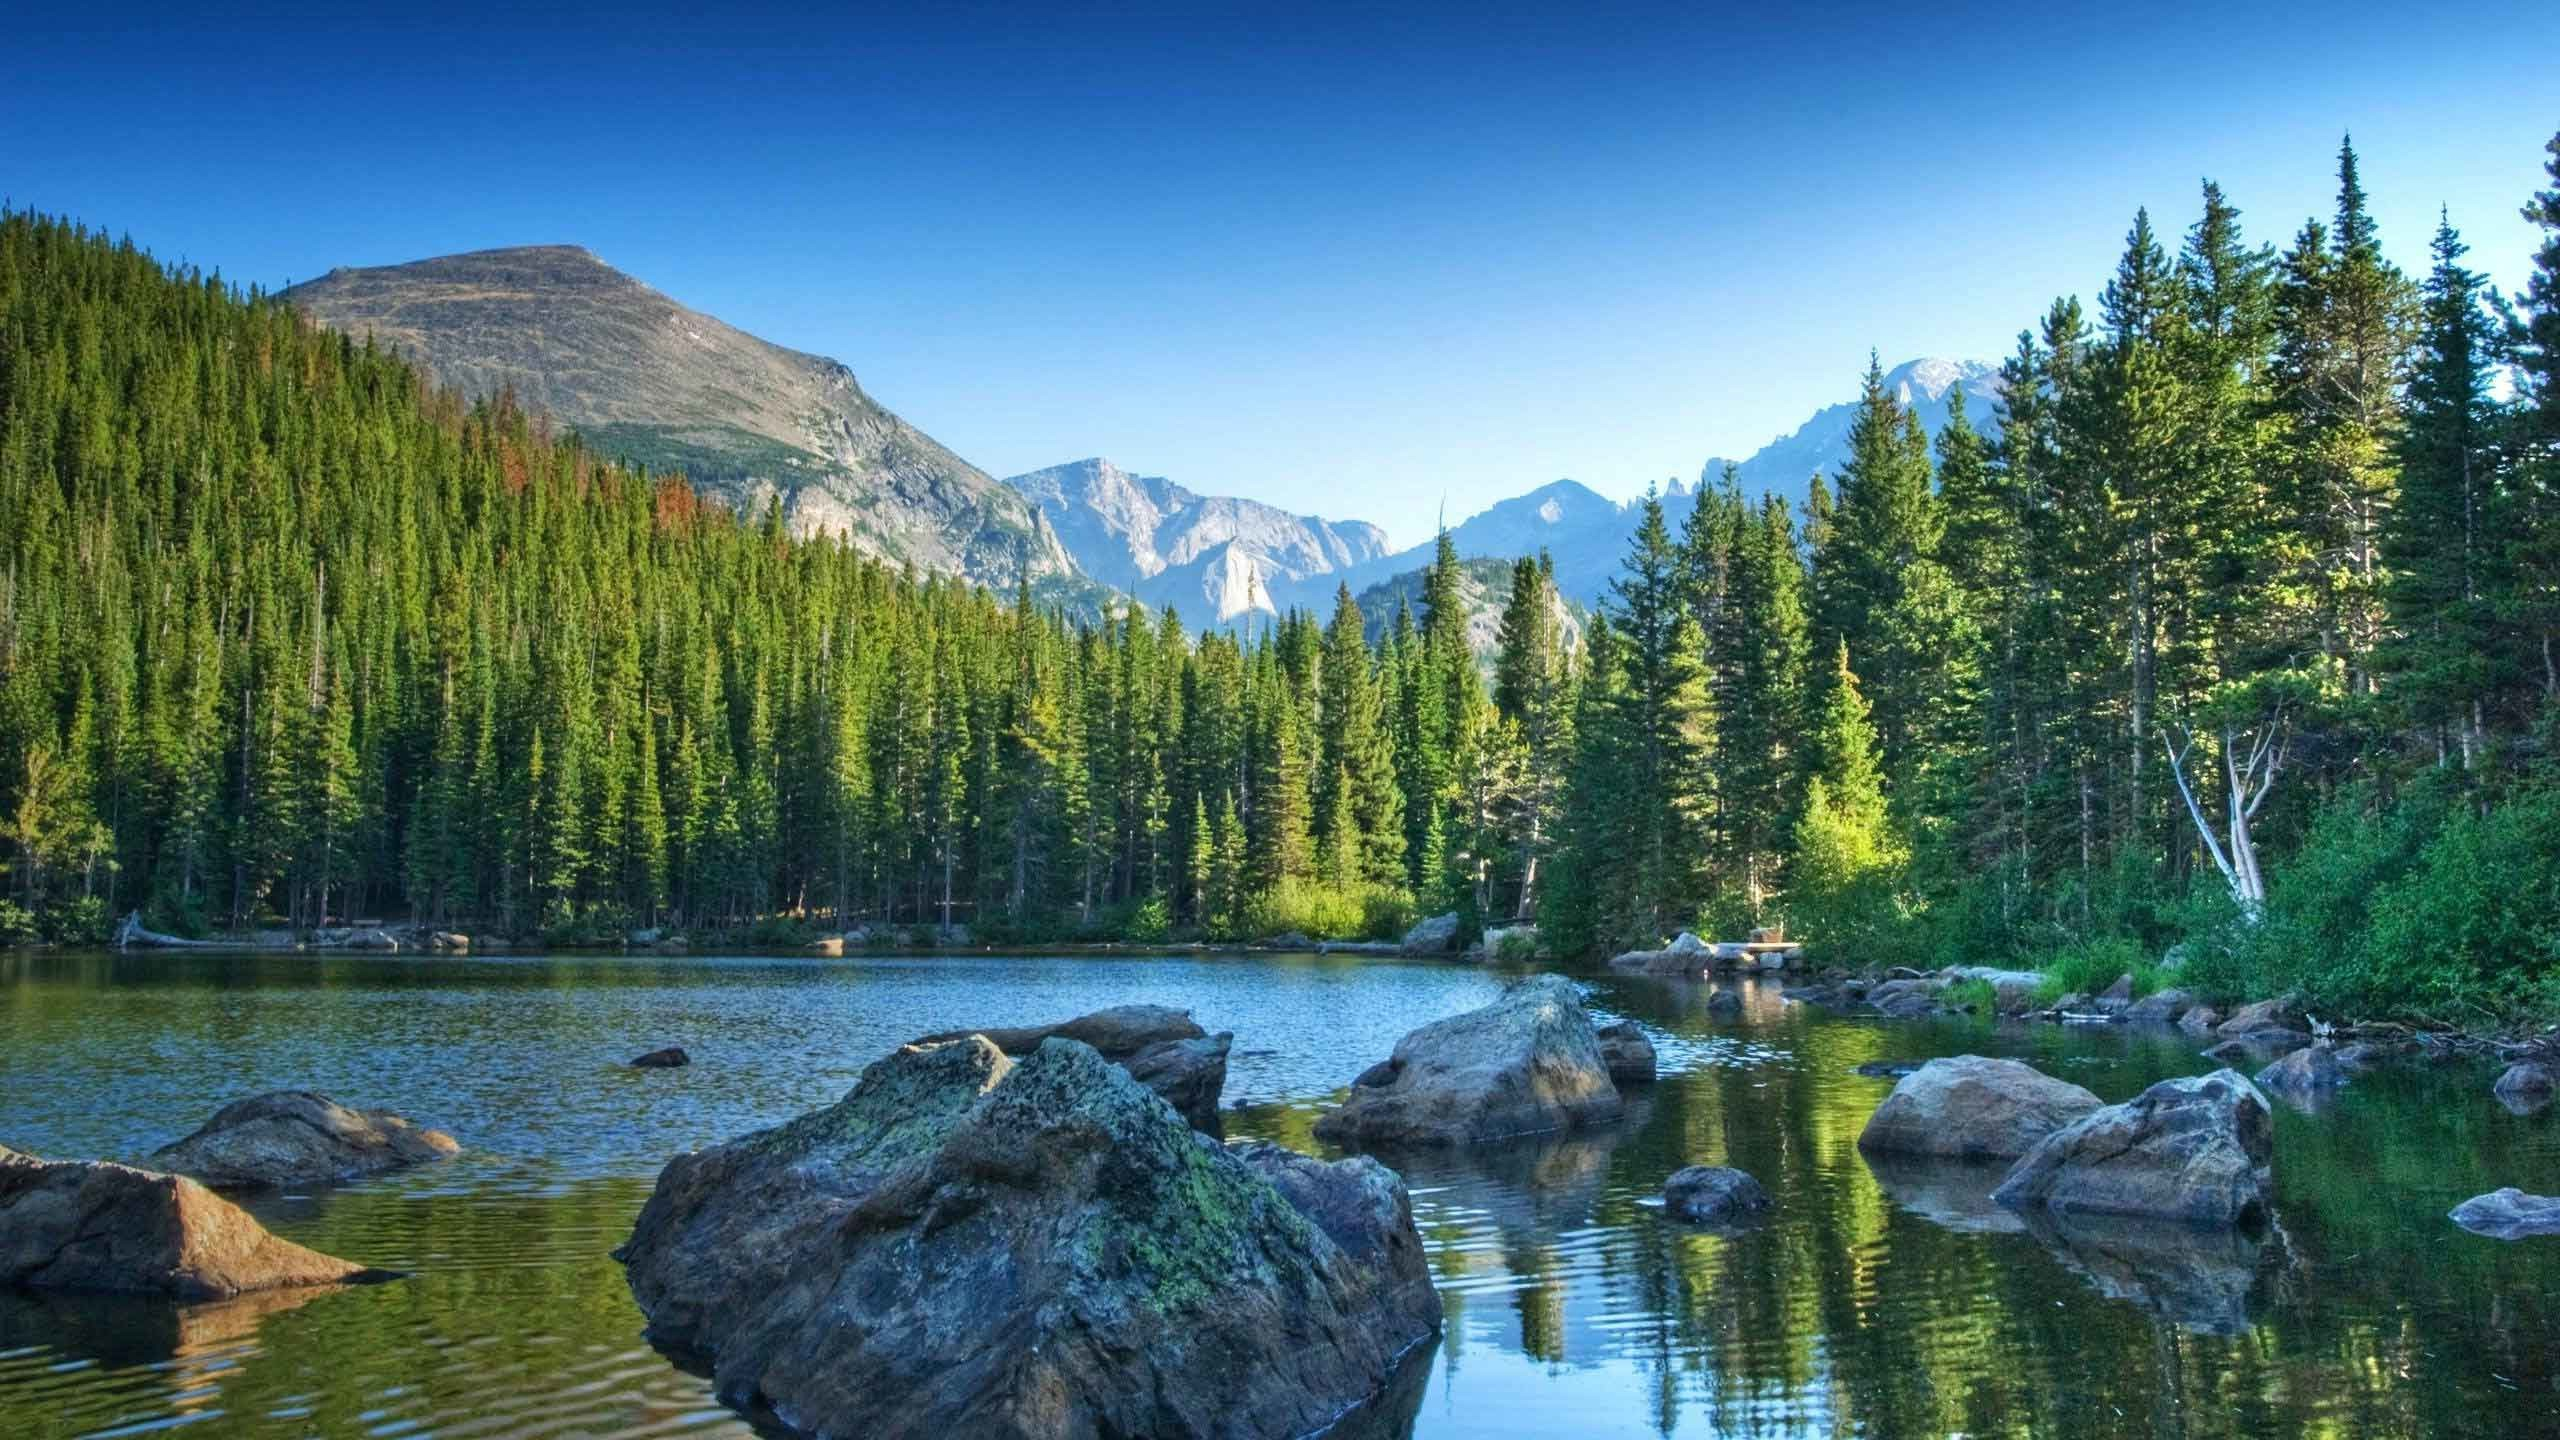 2560x1440 Lakes Landscape Mountain Mountains Nature Wallpaper Picture